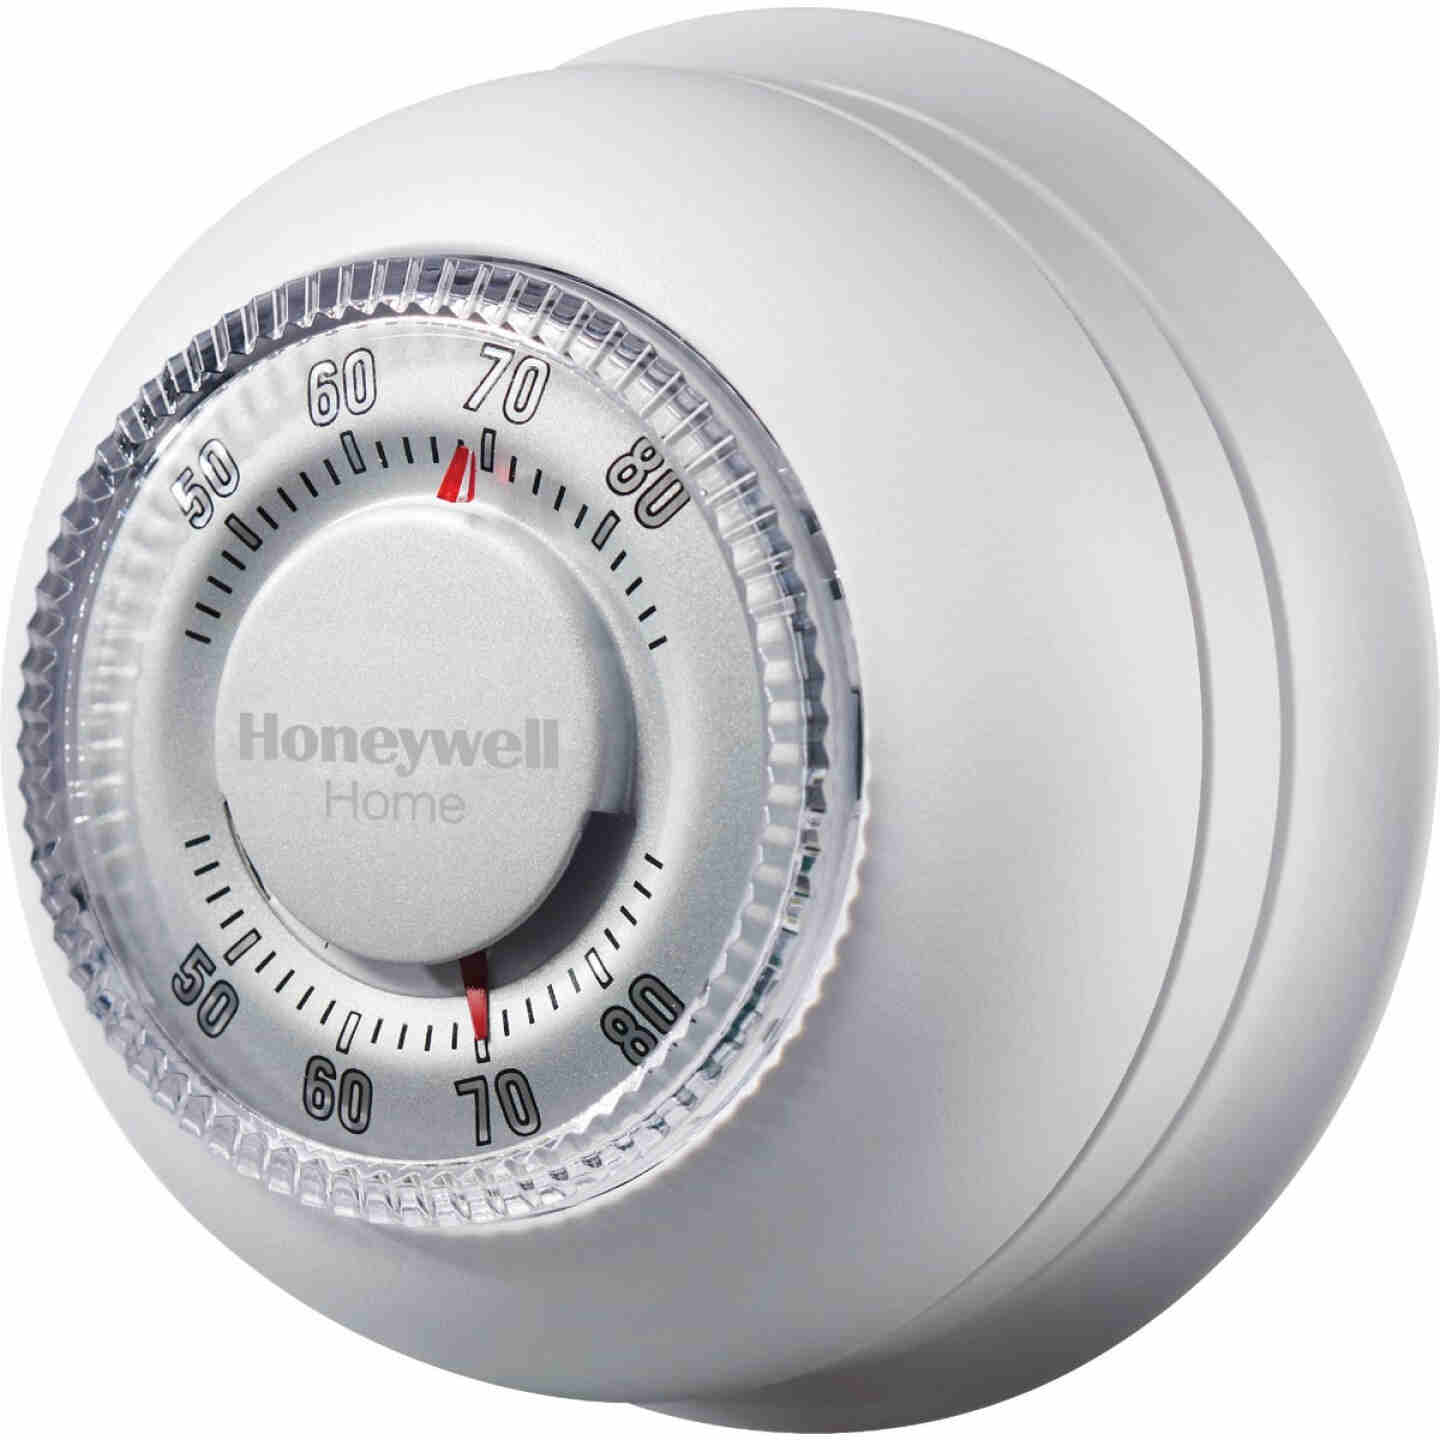 Honeywell Home Heat Only Off White Round Wall Thermostat Image 2